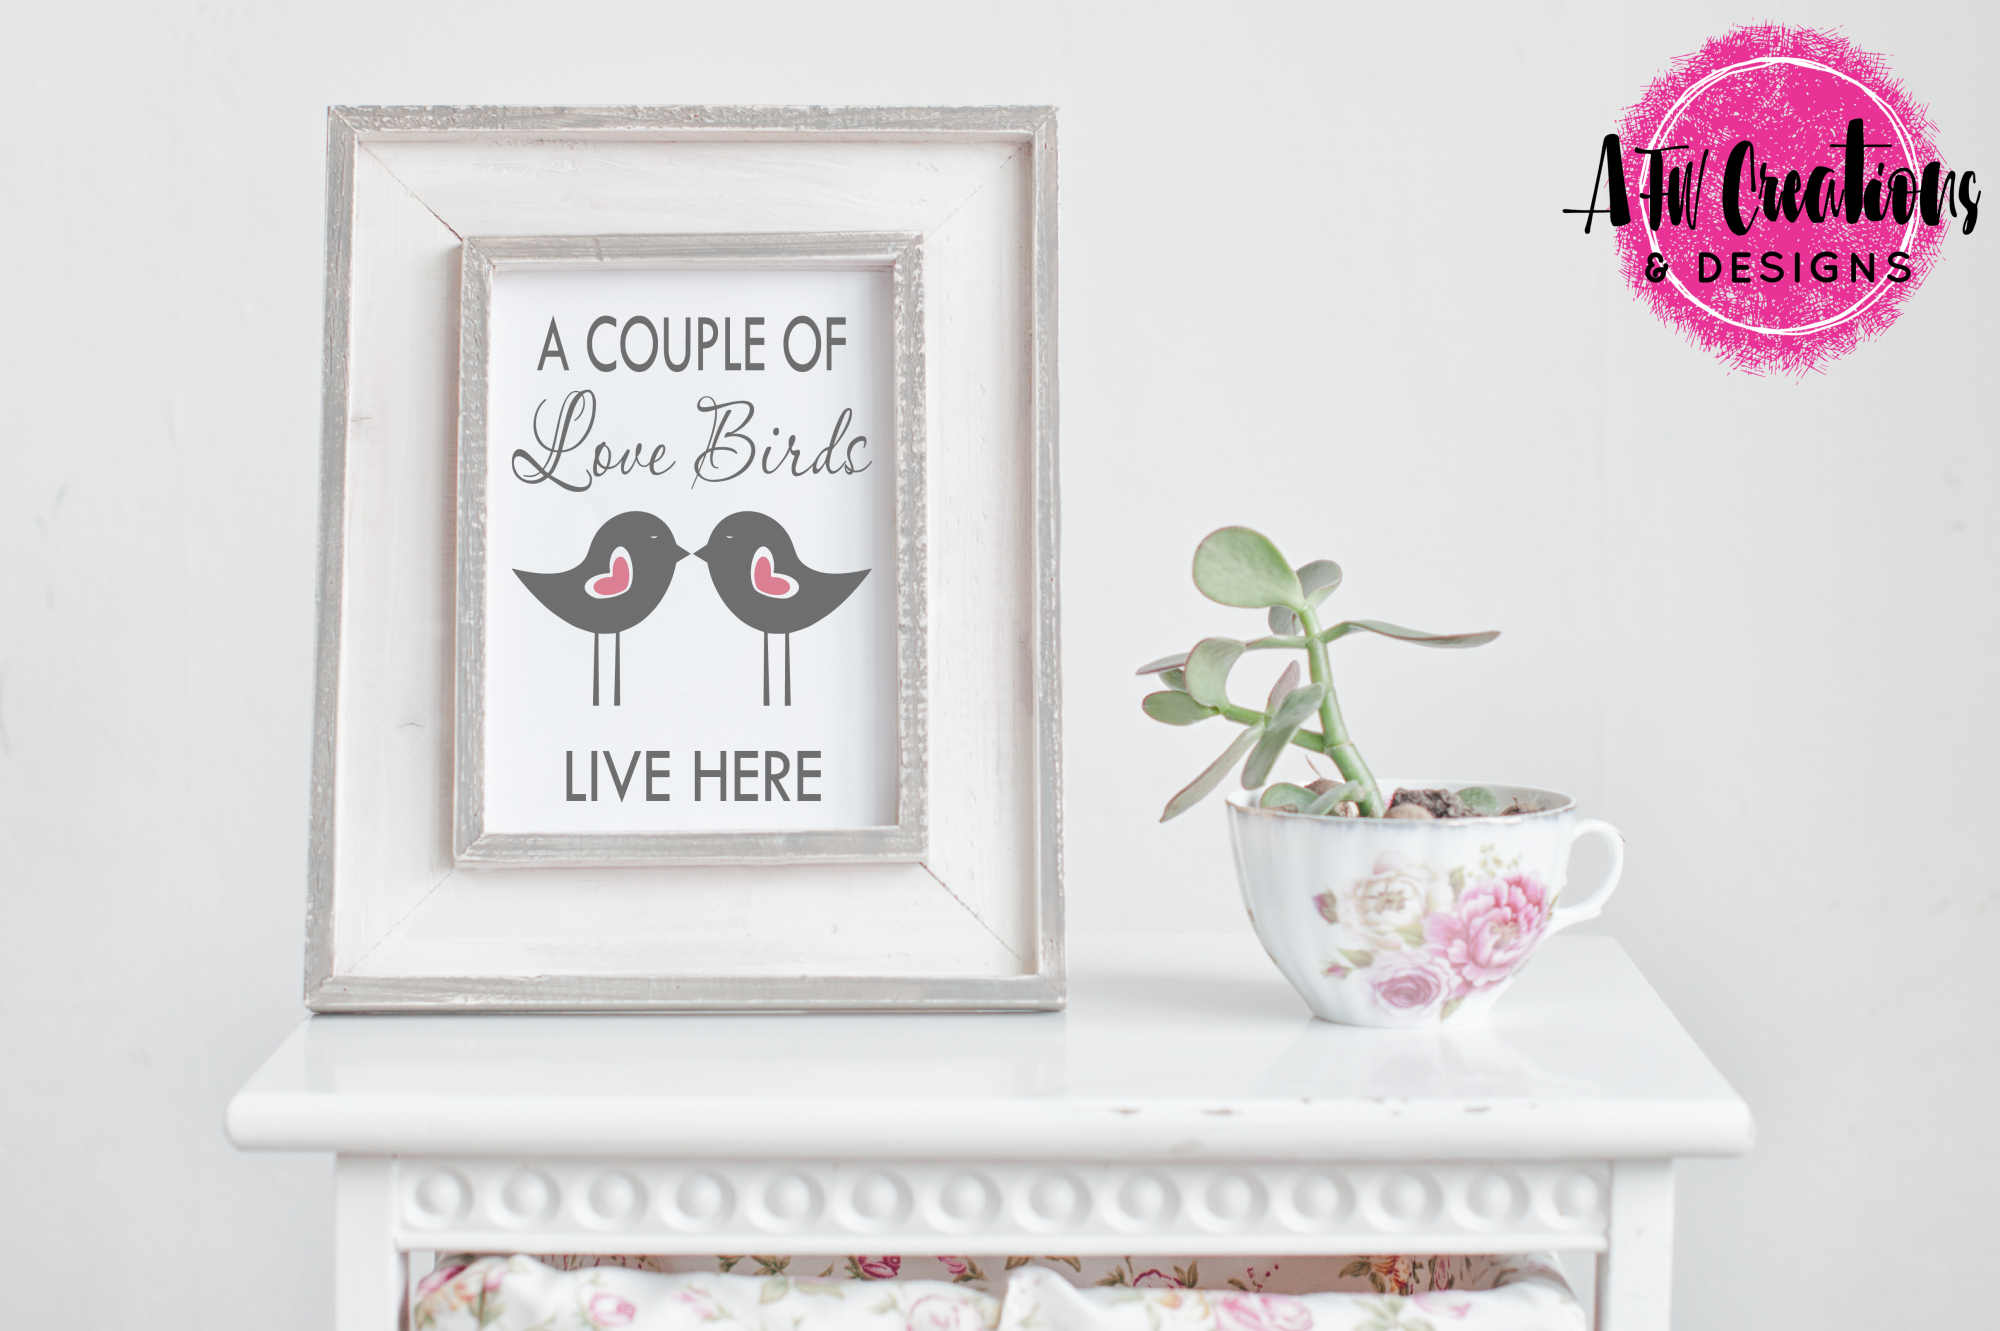 Love Birds Live Here - SVG, DXF, EPS Cut File example image 2